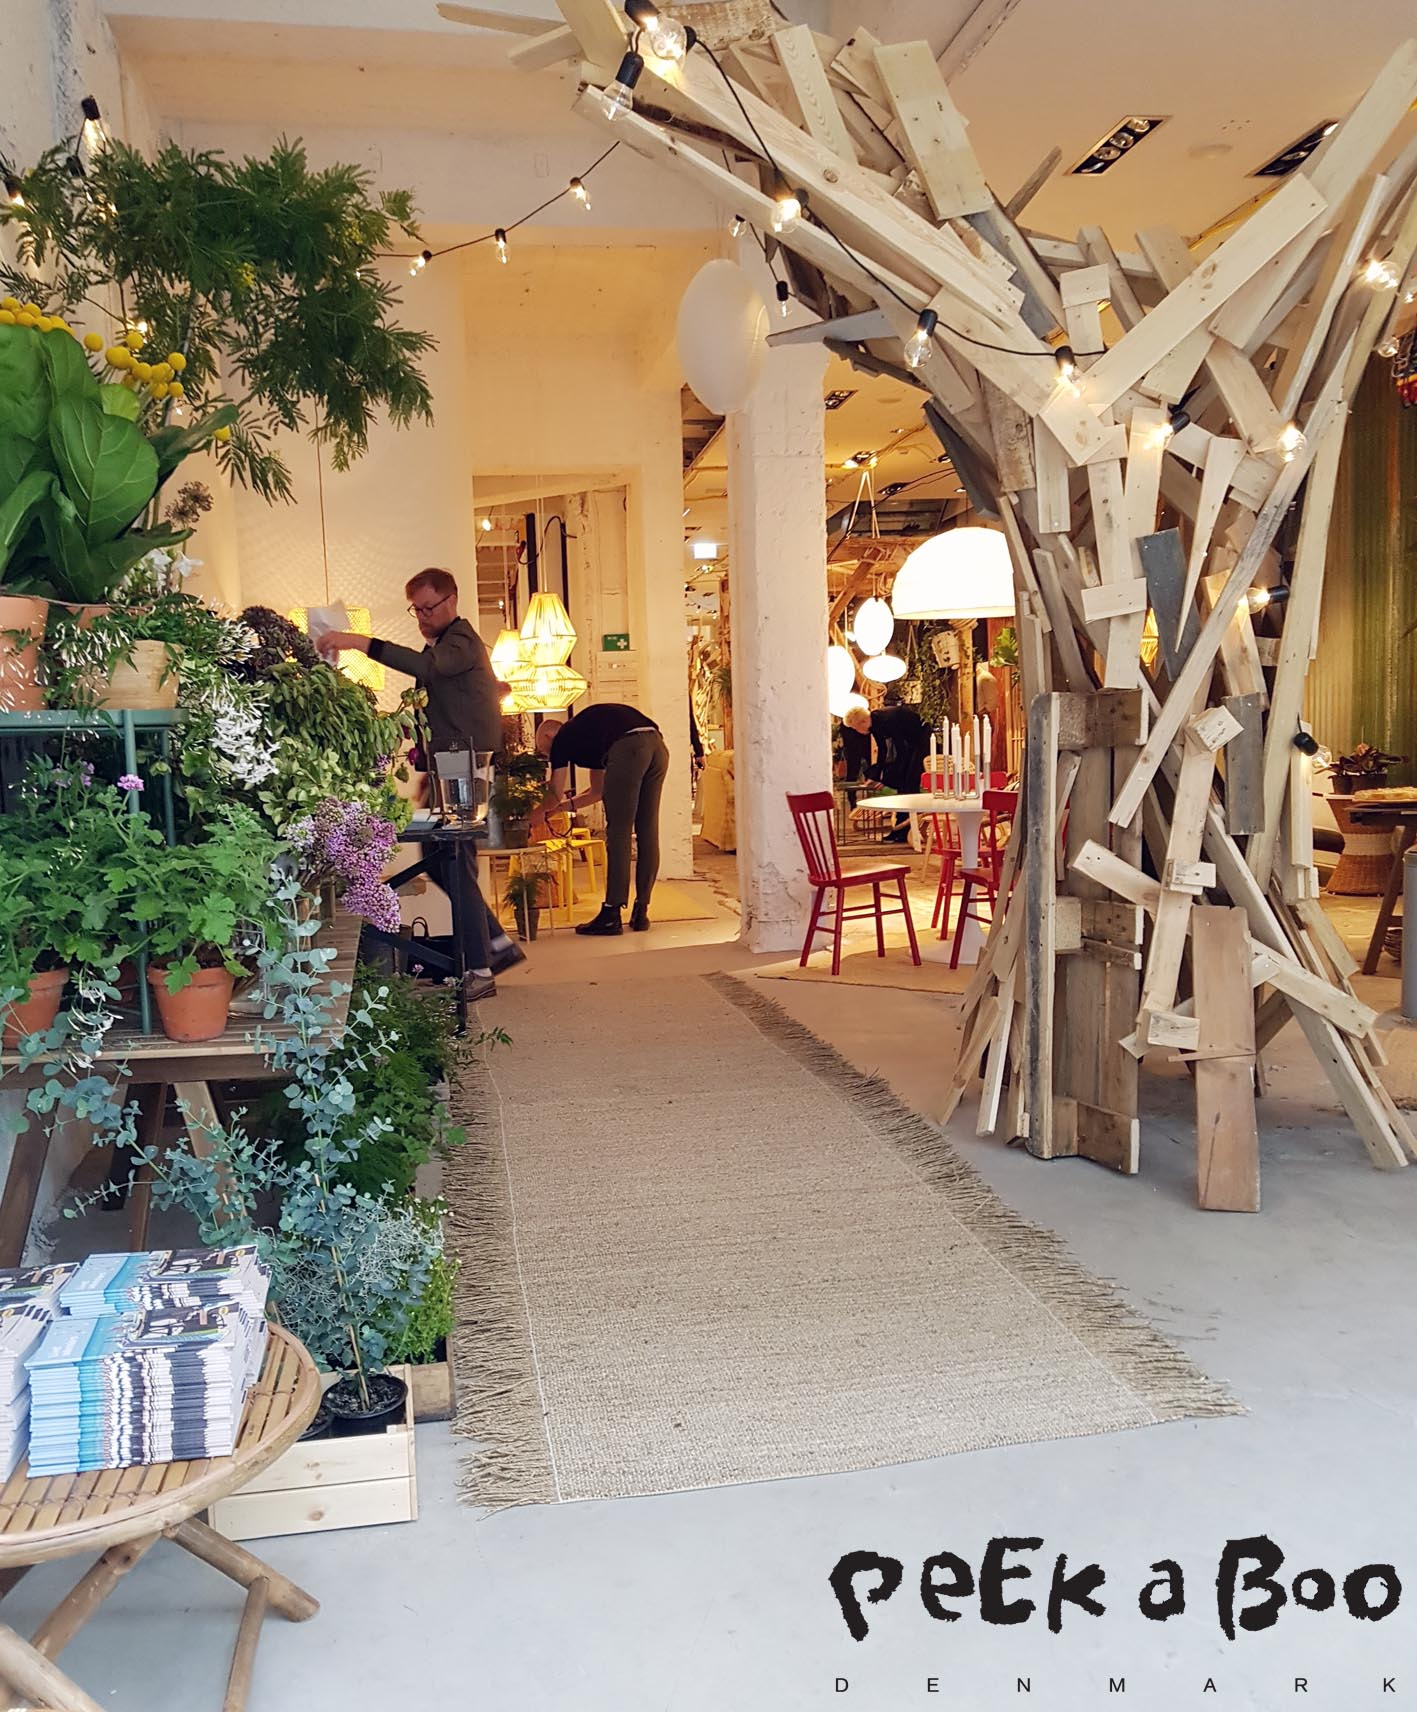 The flowershop at the entrance...and the wooden tree in the middle is so cool....